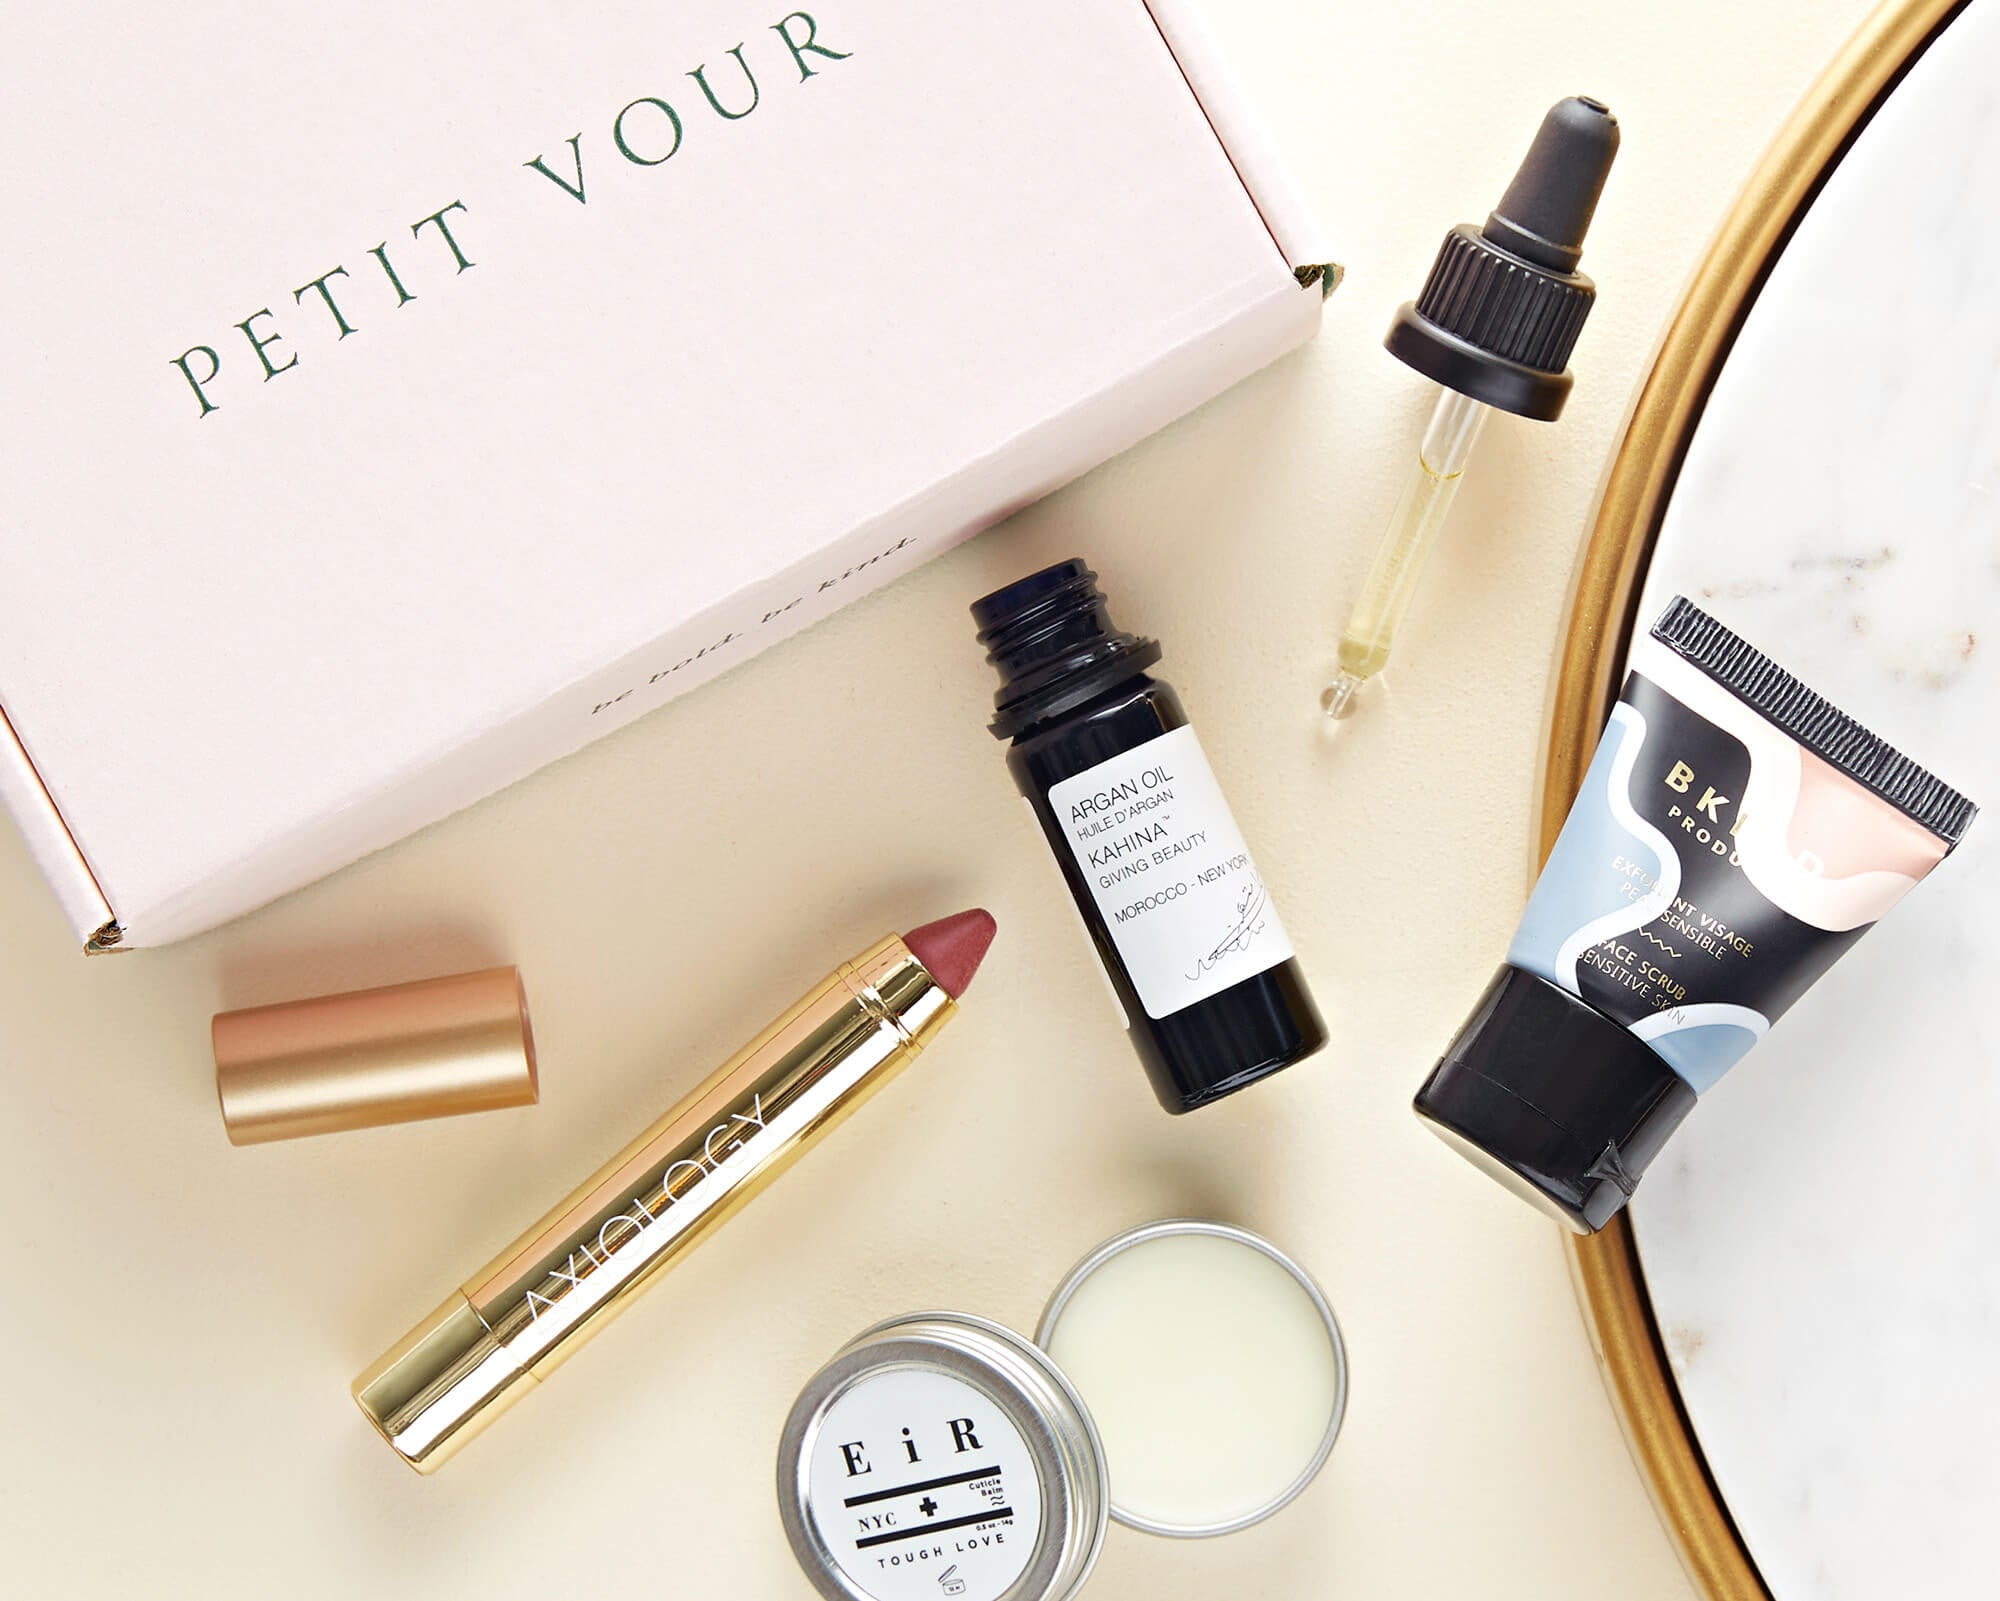 Get the #1 Vegan and Cruelty-Free Beauty Box for just $15/Box